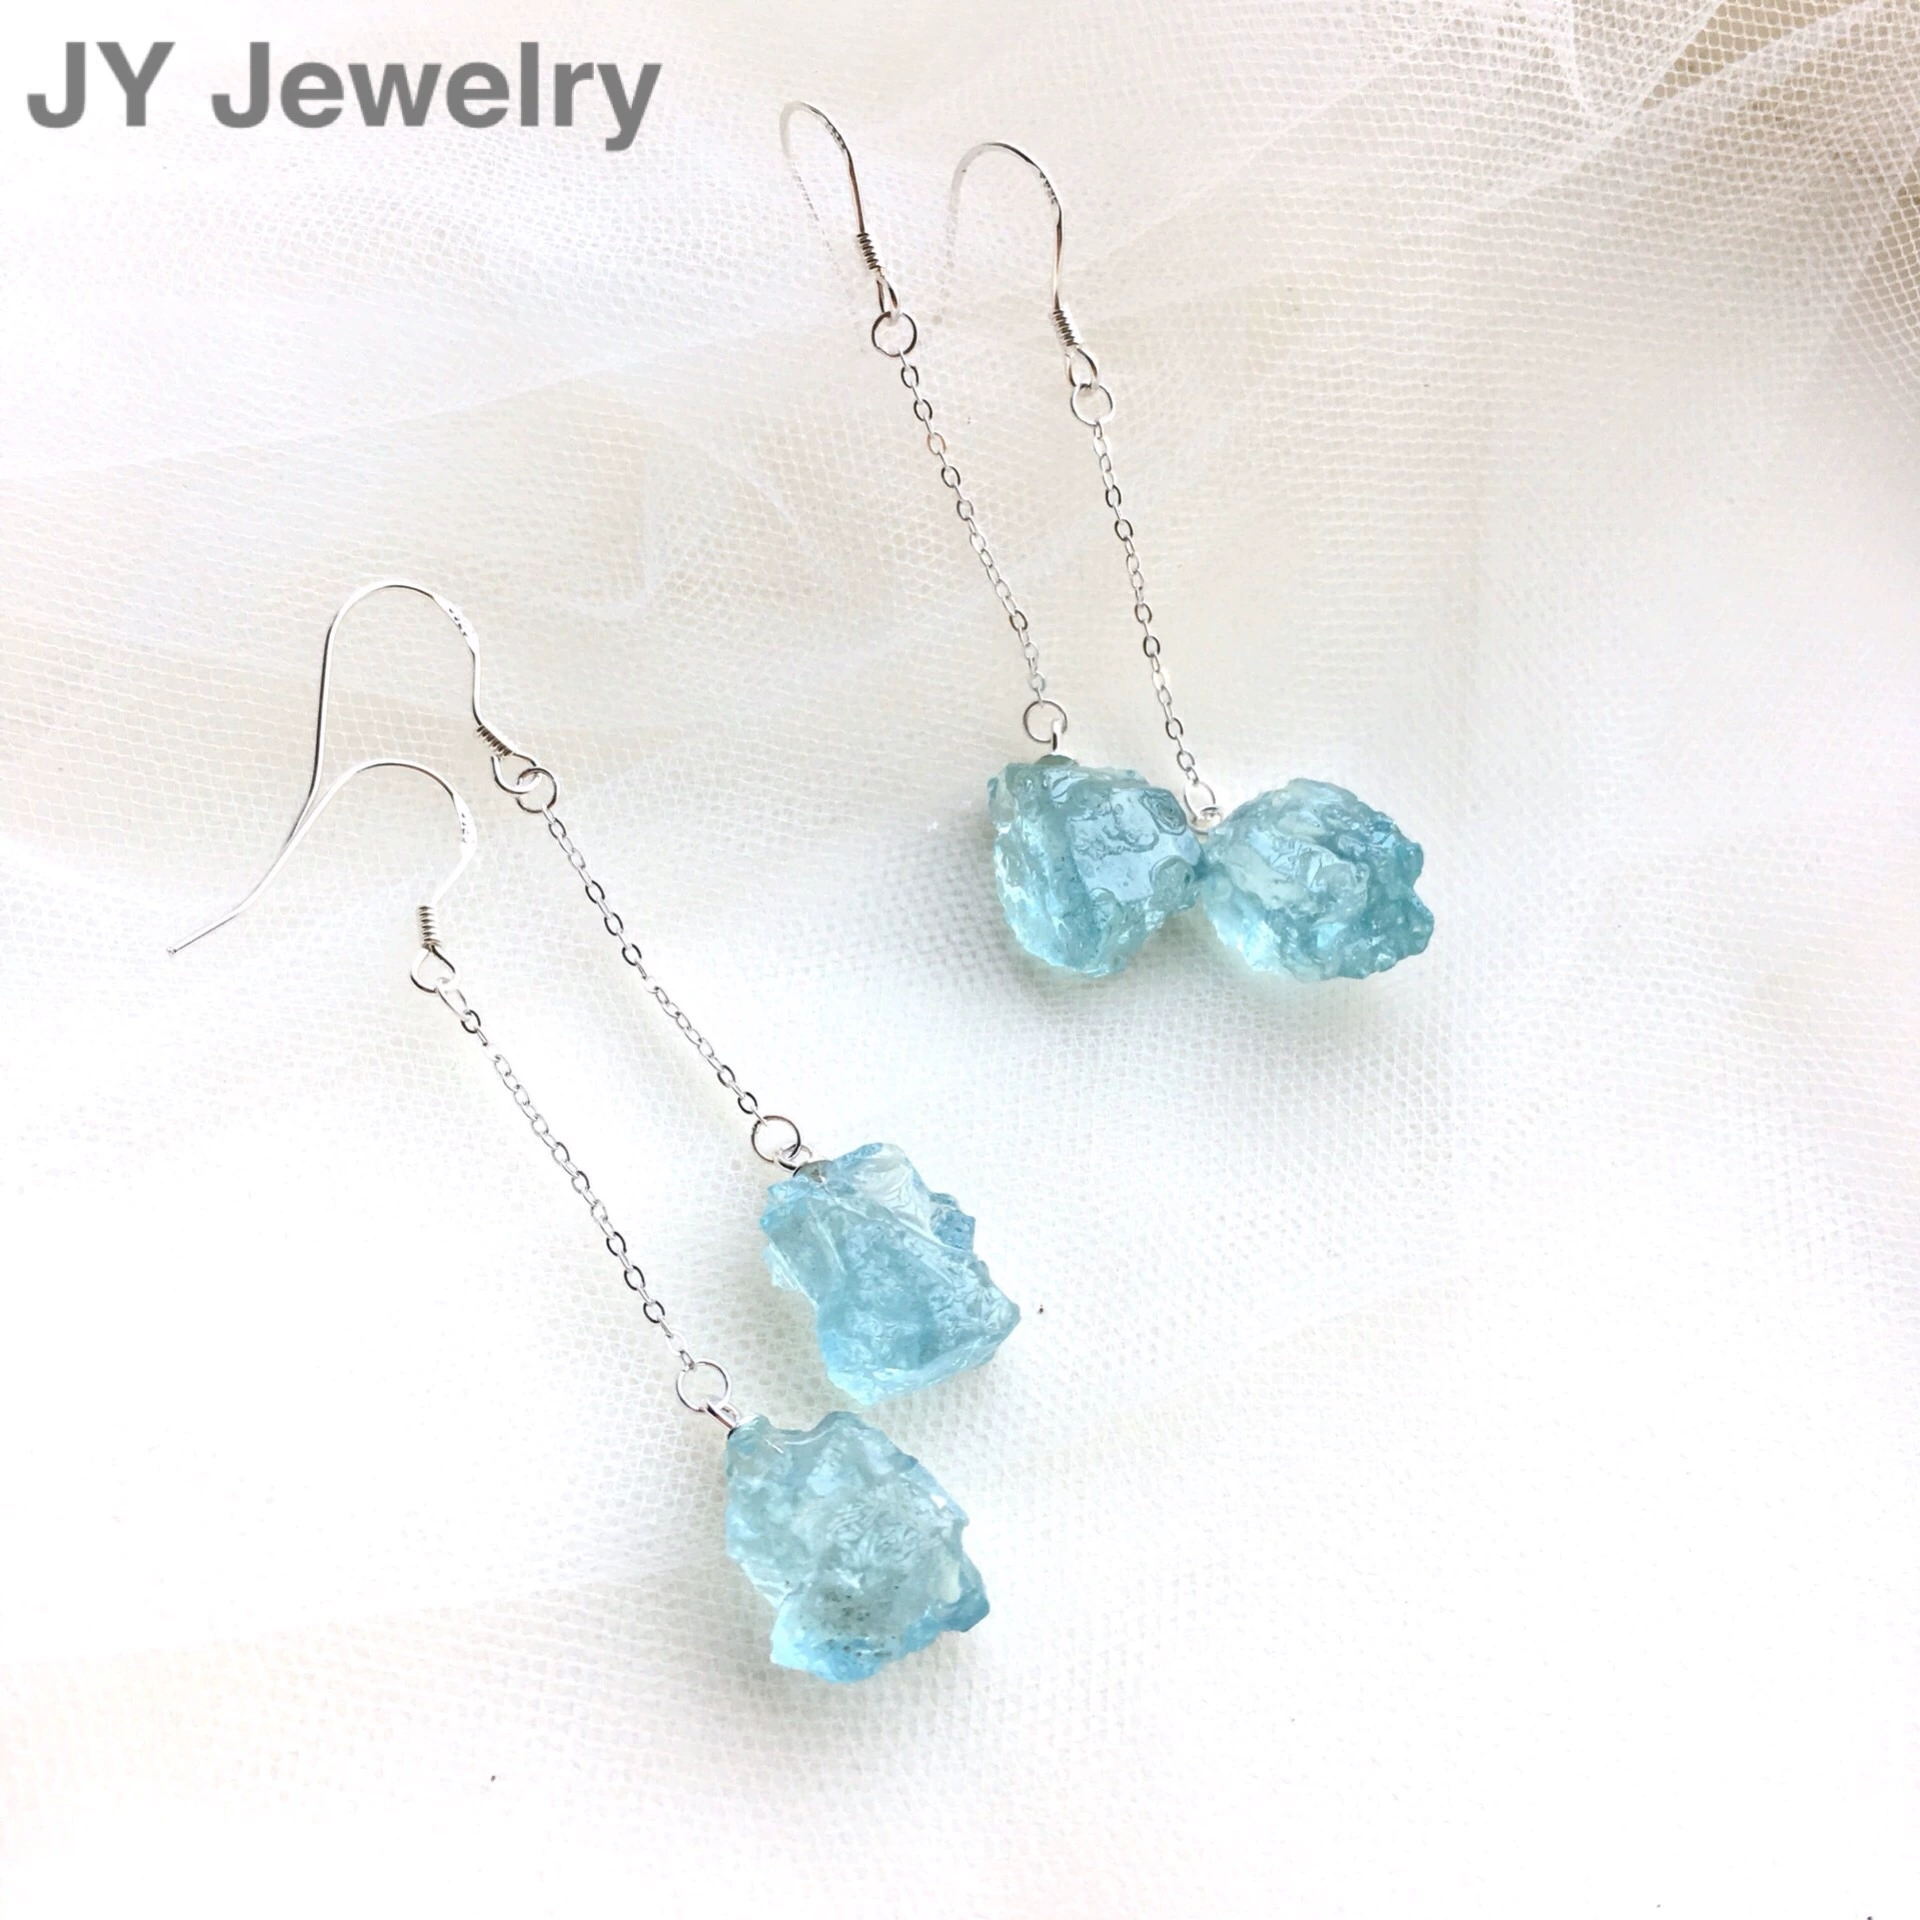 Genuine Natural Blue Aquamarine Raw Material Earrings For Fashion Women Lady Gift 16x10mm Sterling Earring AAAAA Certificate